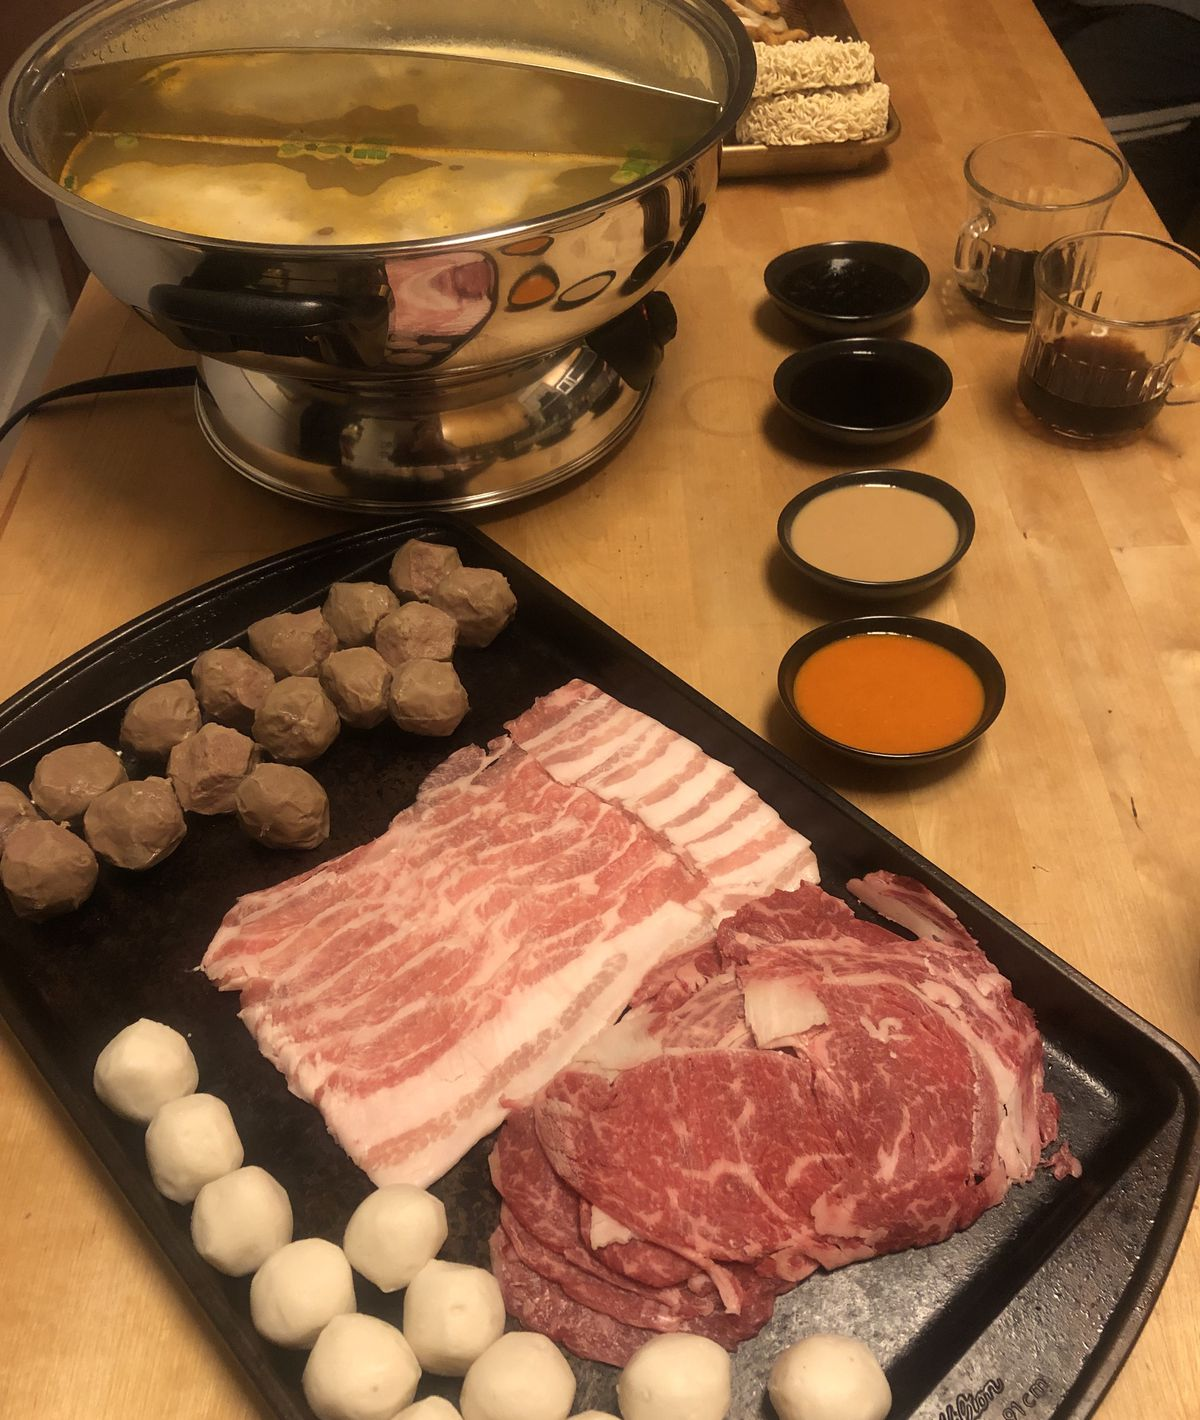 A hot pot with broth is visible in the background and a dark platter with fish and beef balls plus sliced red meats is set in front of the hot pot. Four sauces in small dark bowls are set alongside the other items on a light wooden table.